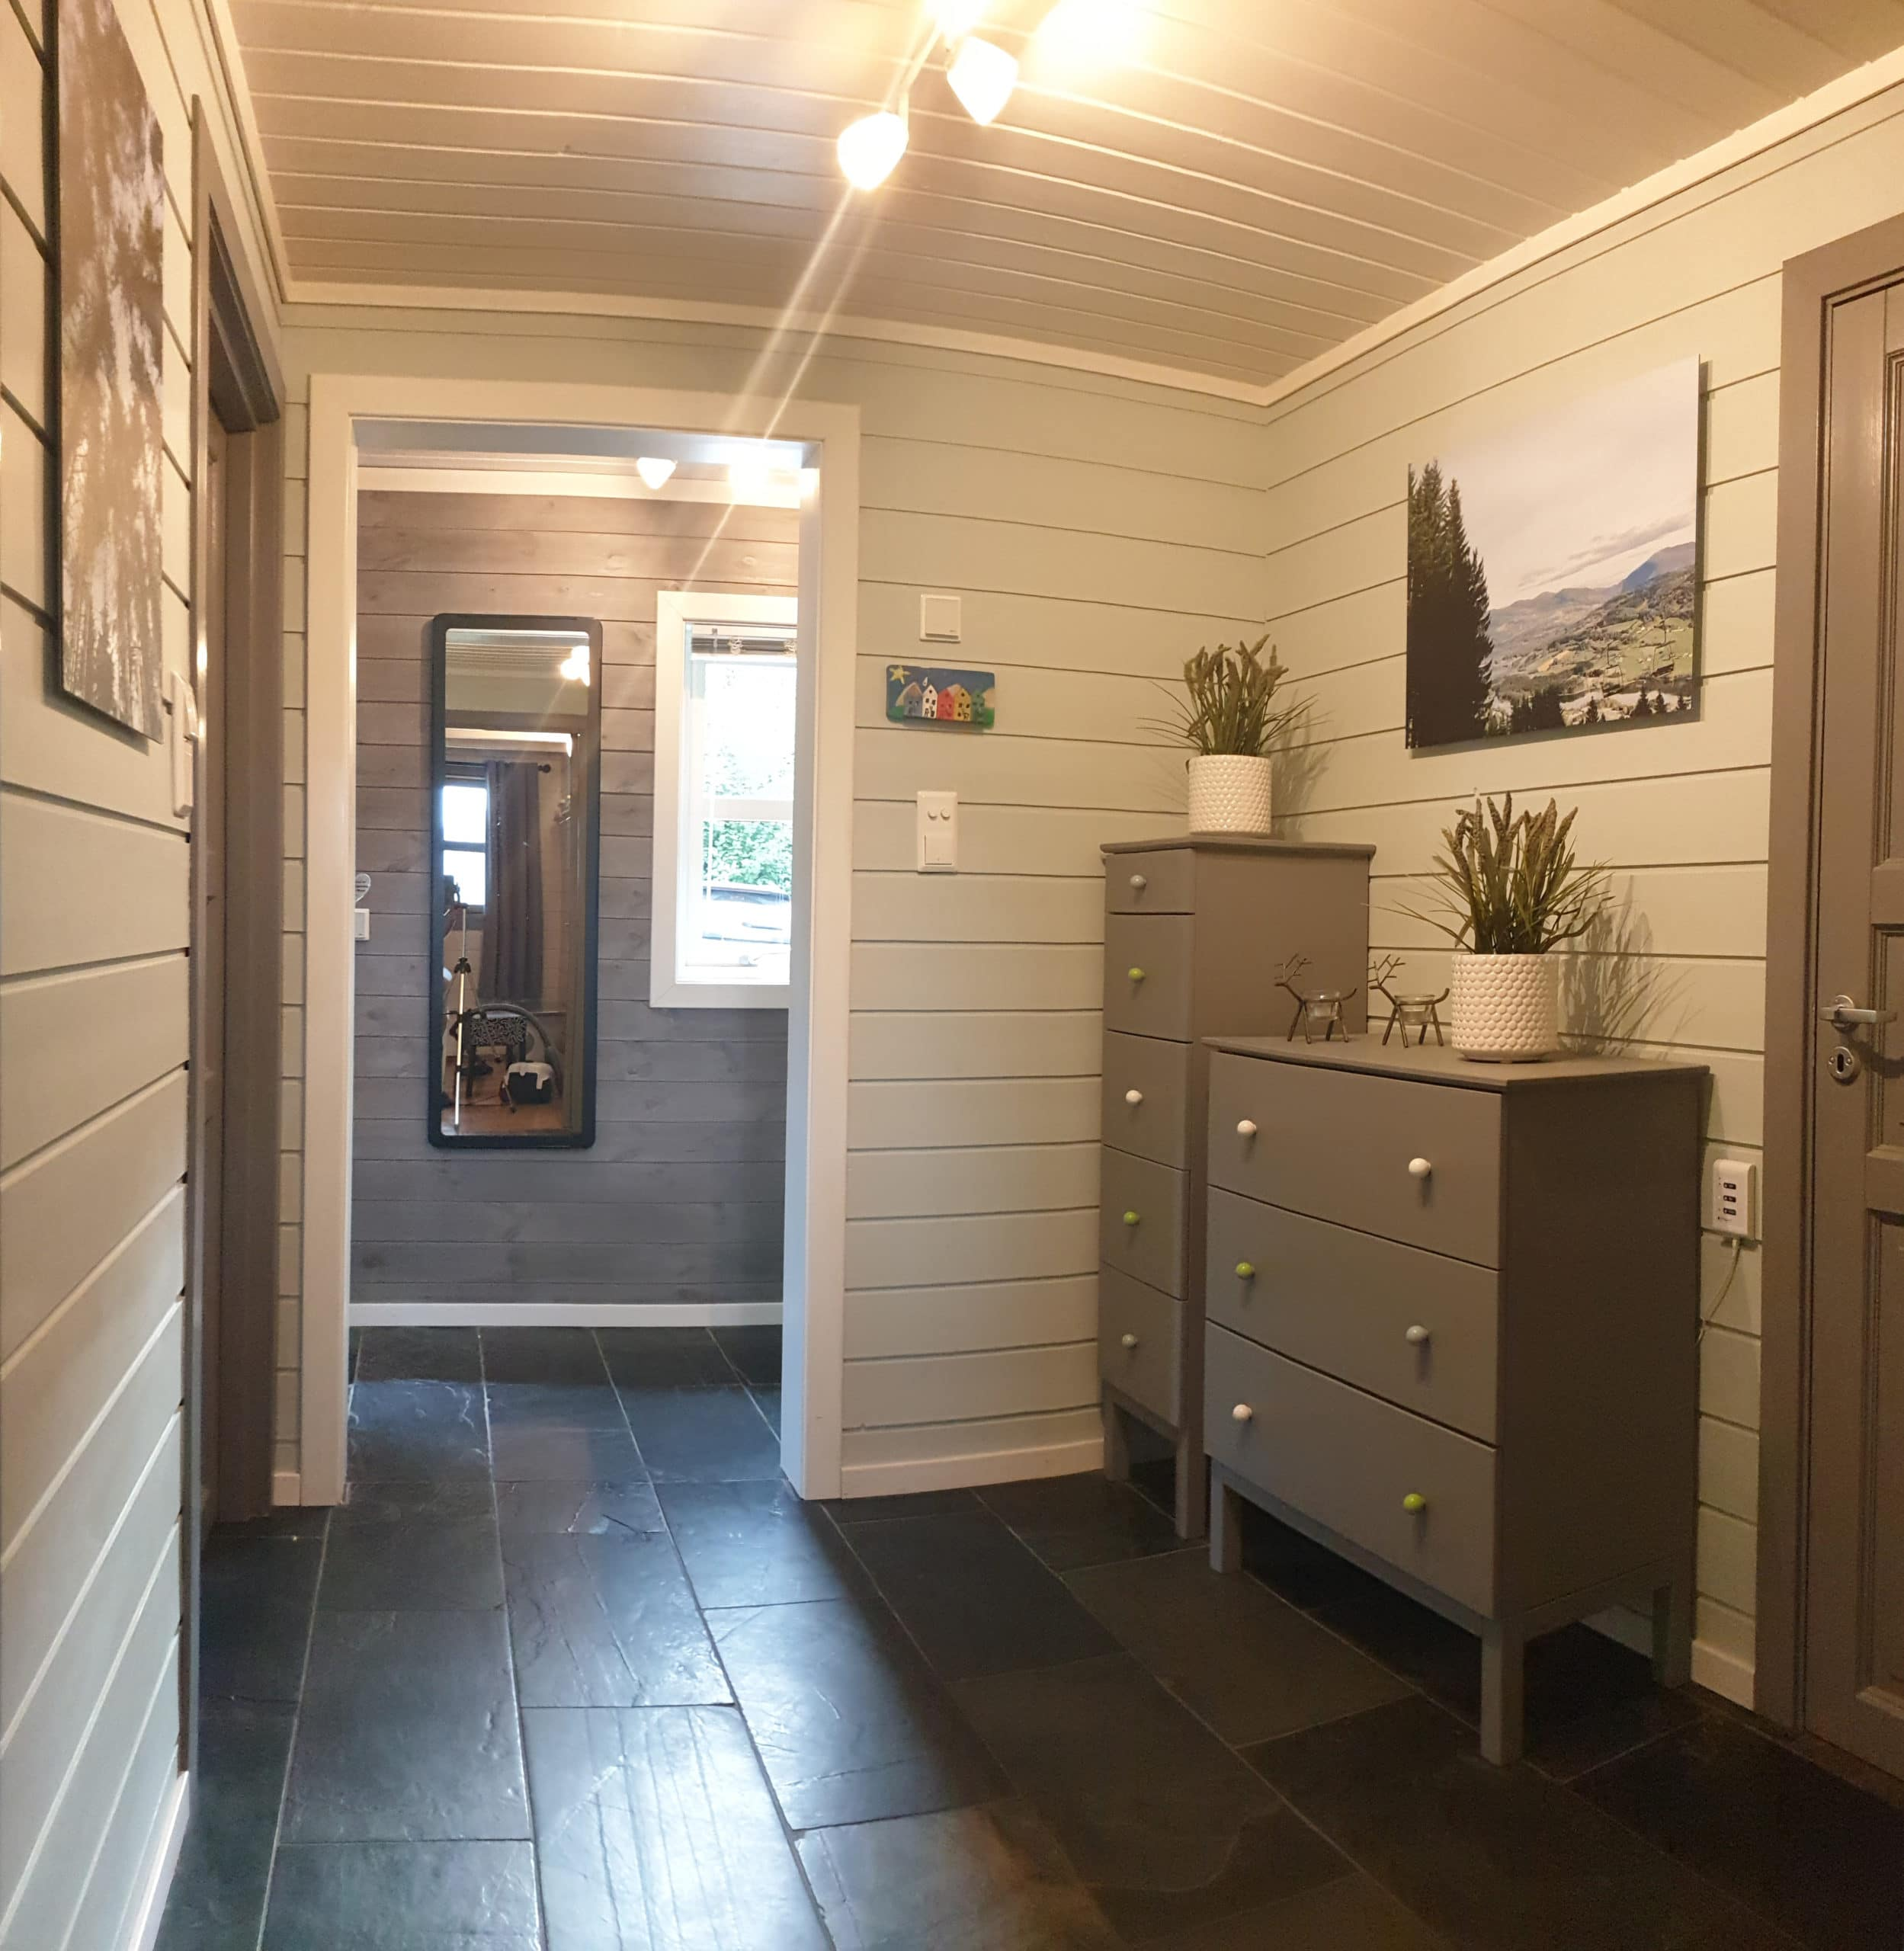 Hall to living room, bedroom and wc